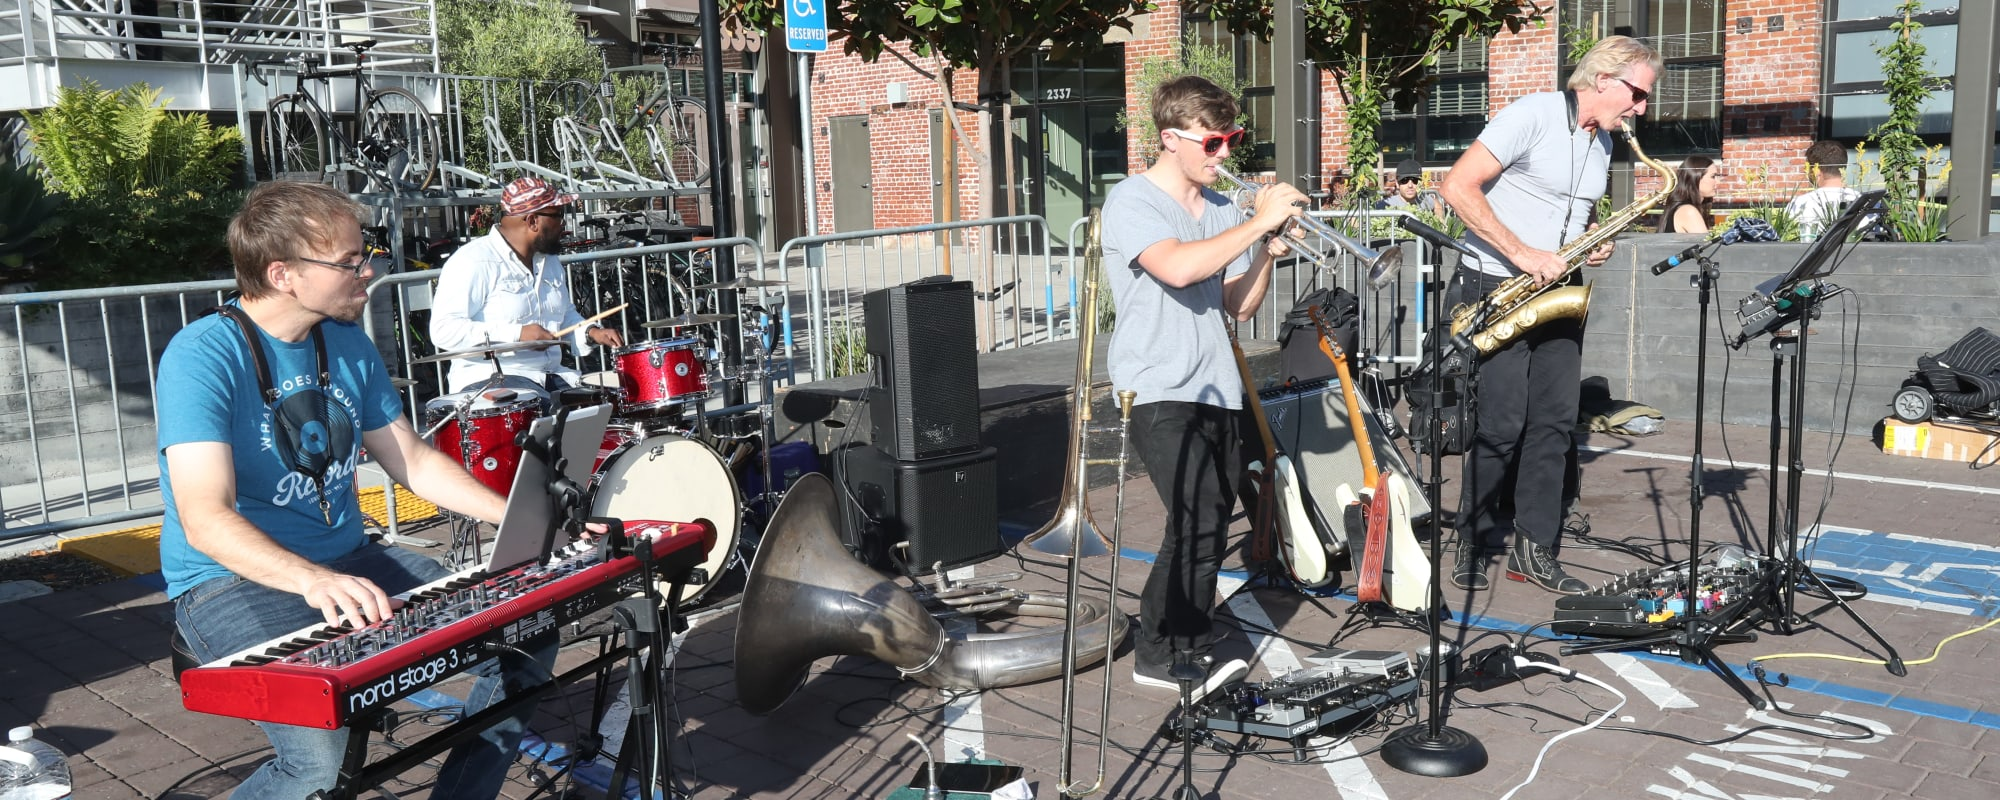 Musicians playing near The Moran in Oakland, California